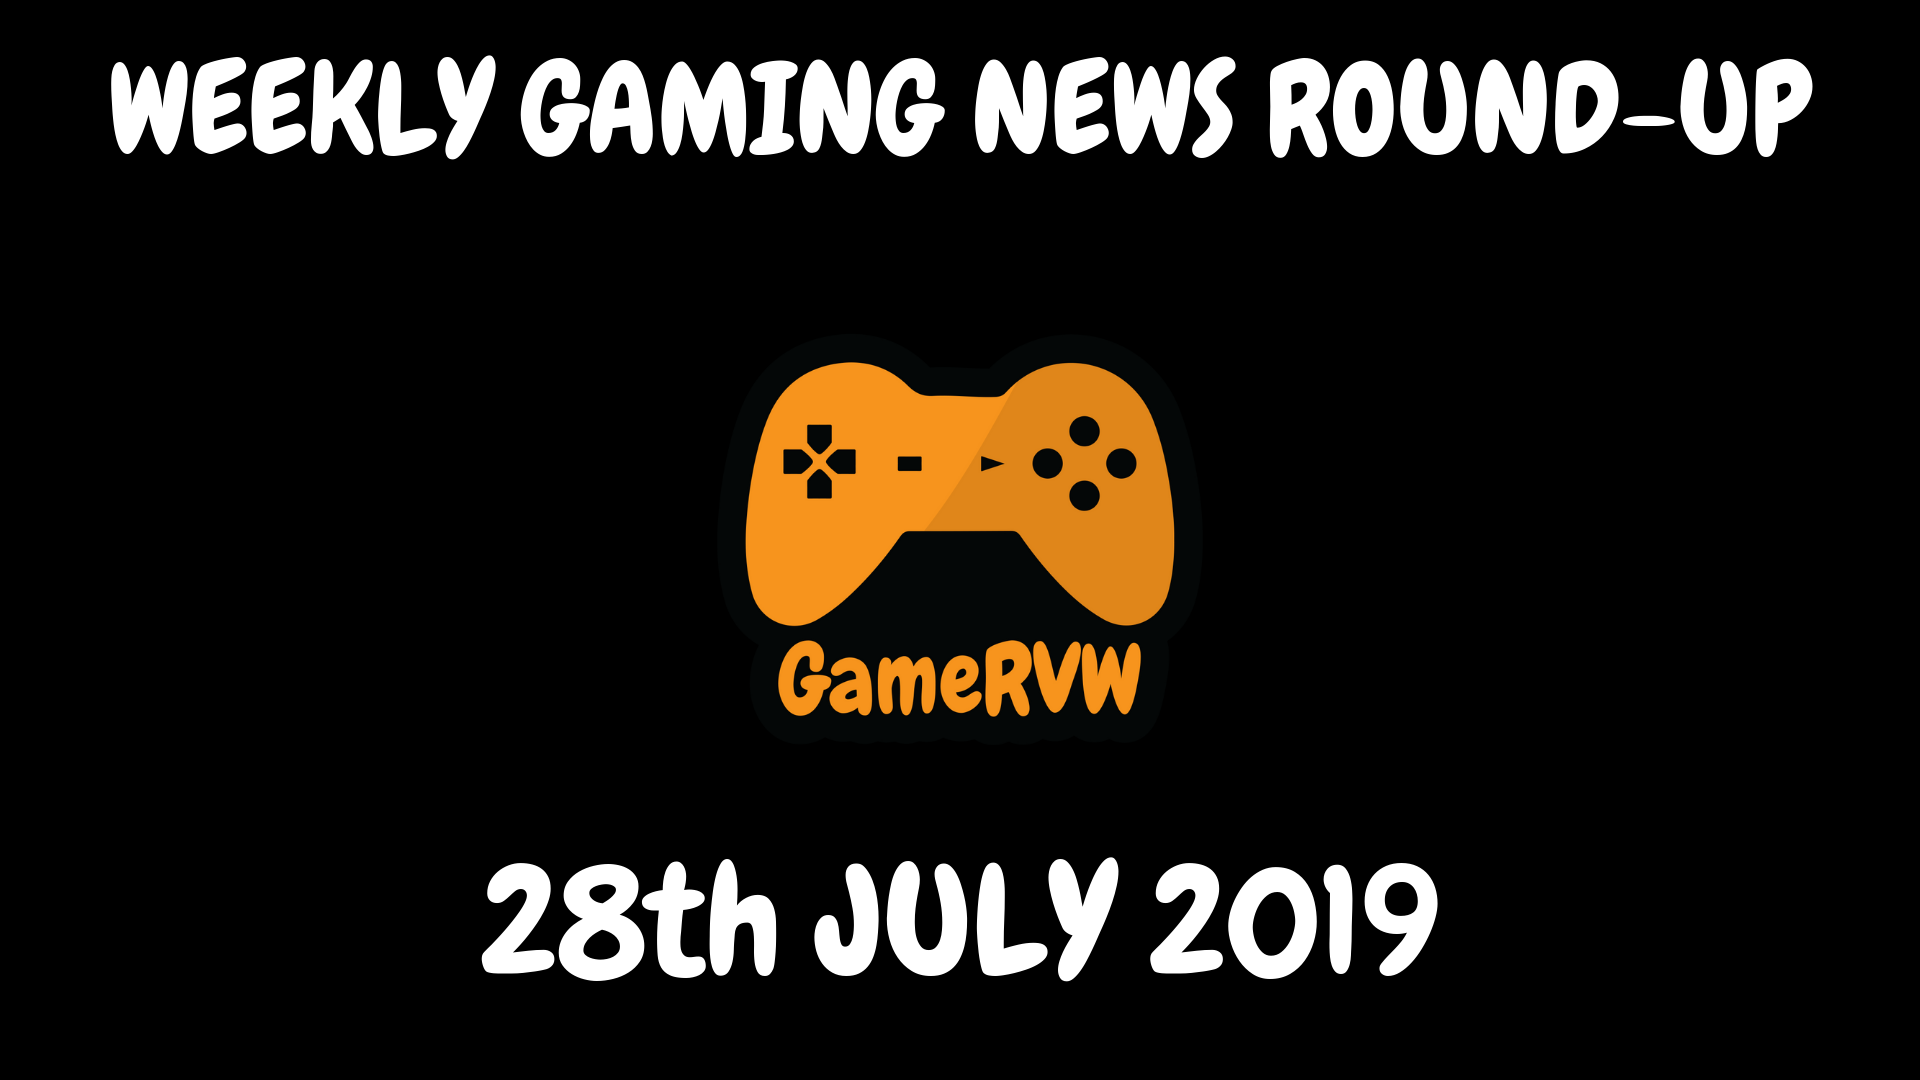 Gaming News of the Week